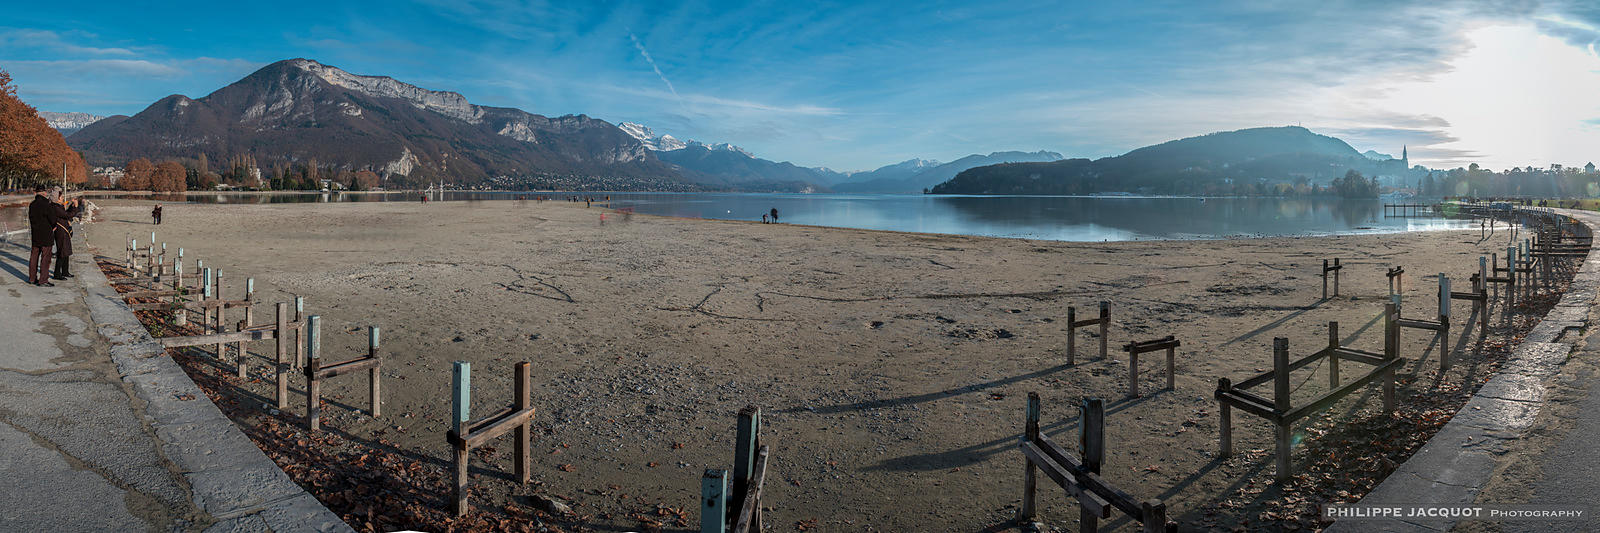 The low water level of the lake on November 28, 2018 (2) - Annecy